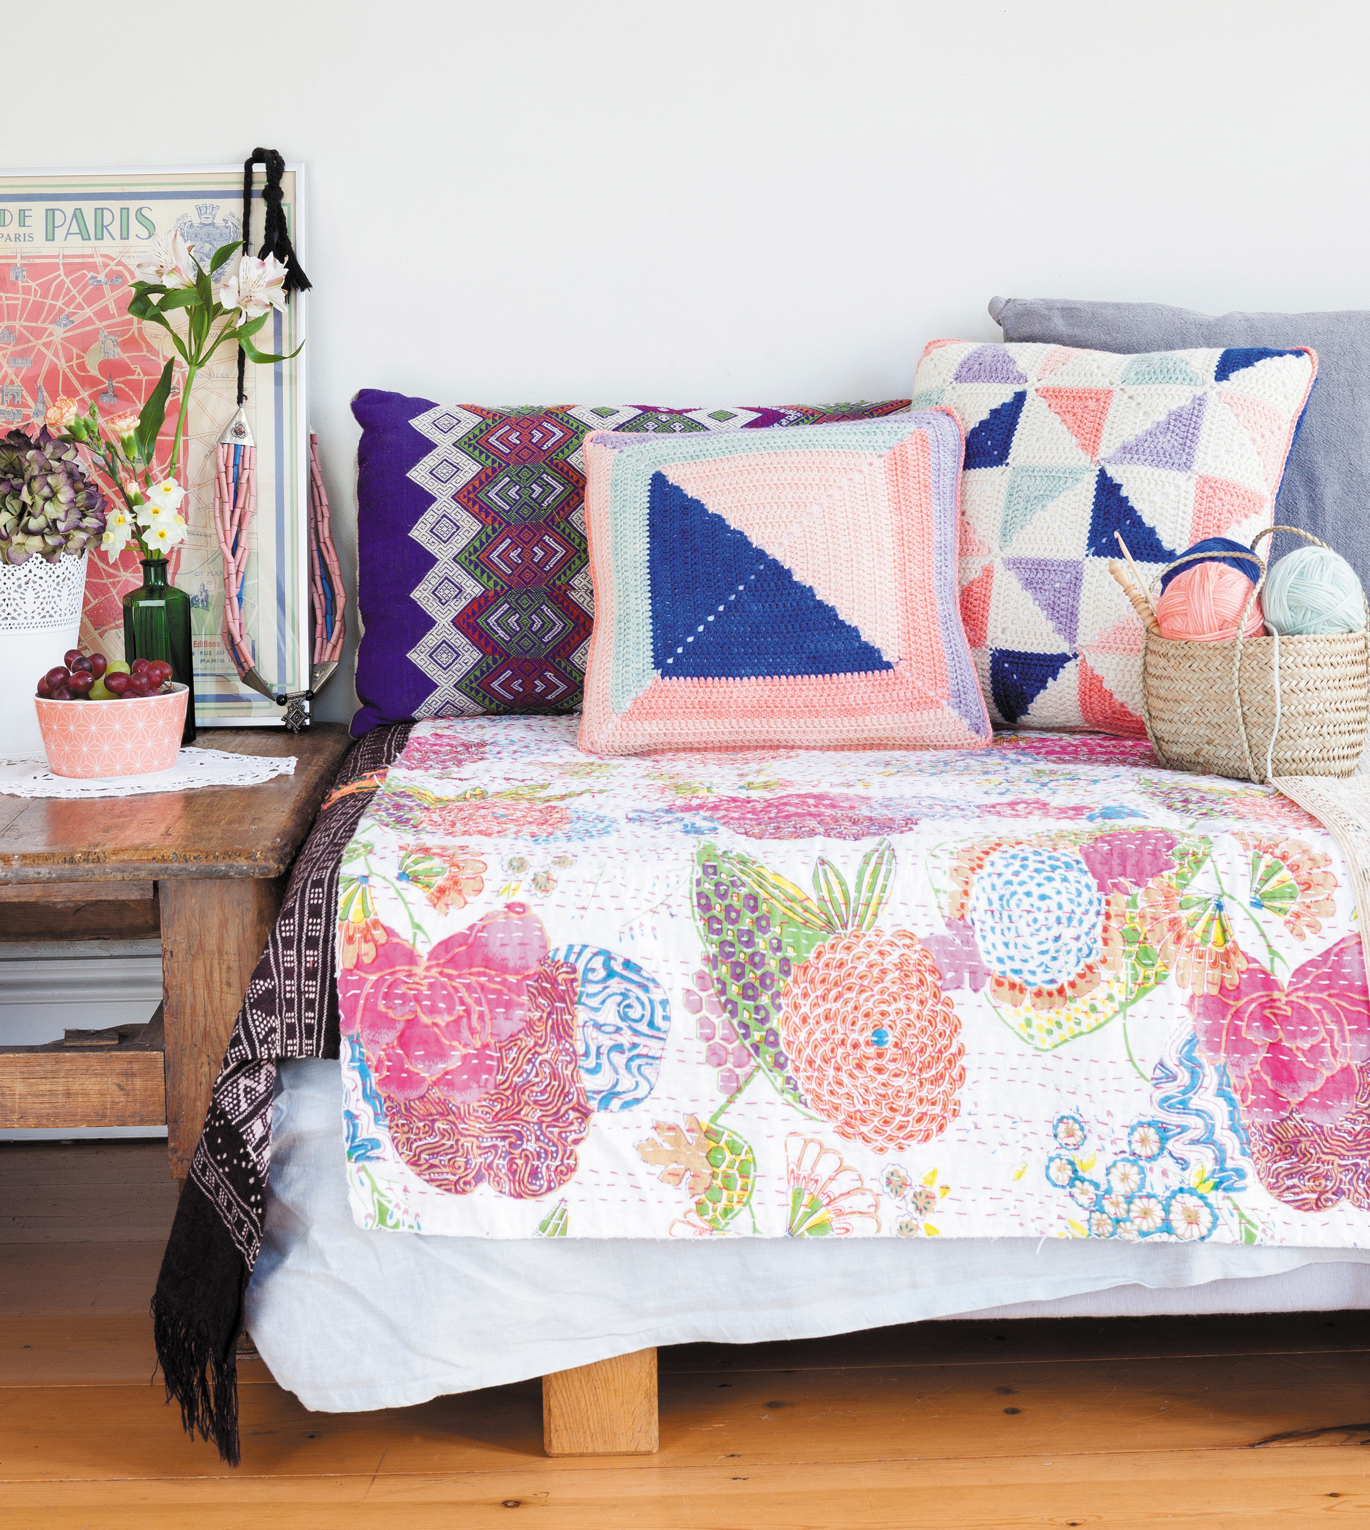 Pinwheel Patchwork Cushion & Log Cabin Cushion from Crochet Home by Emma Lamb | Crochet designs and styling by Emma Lamb / Photography by Jason M Jenkins